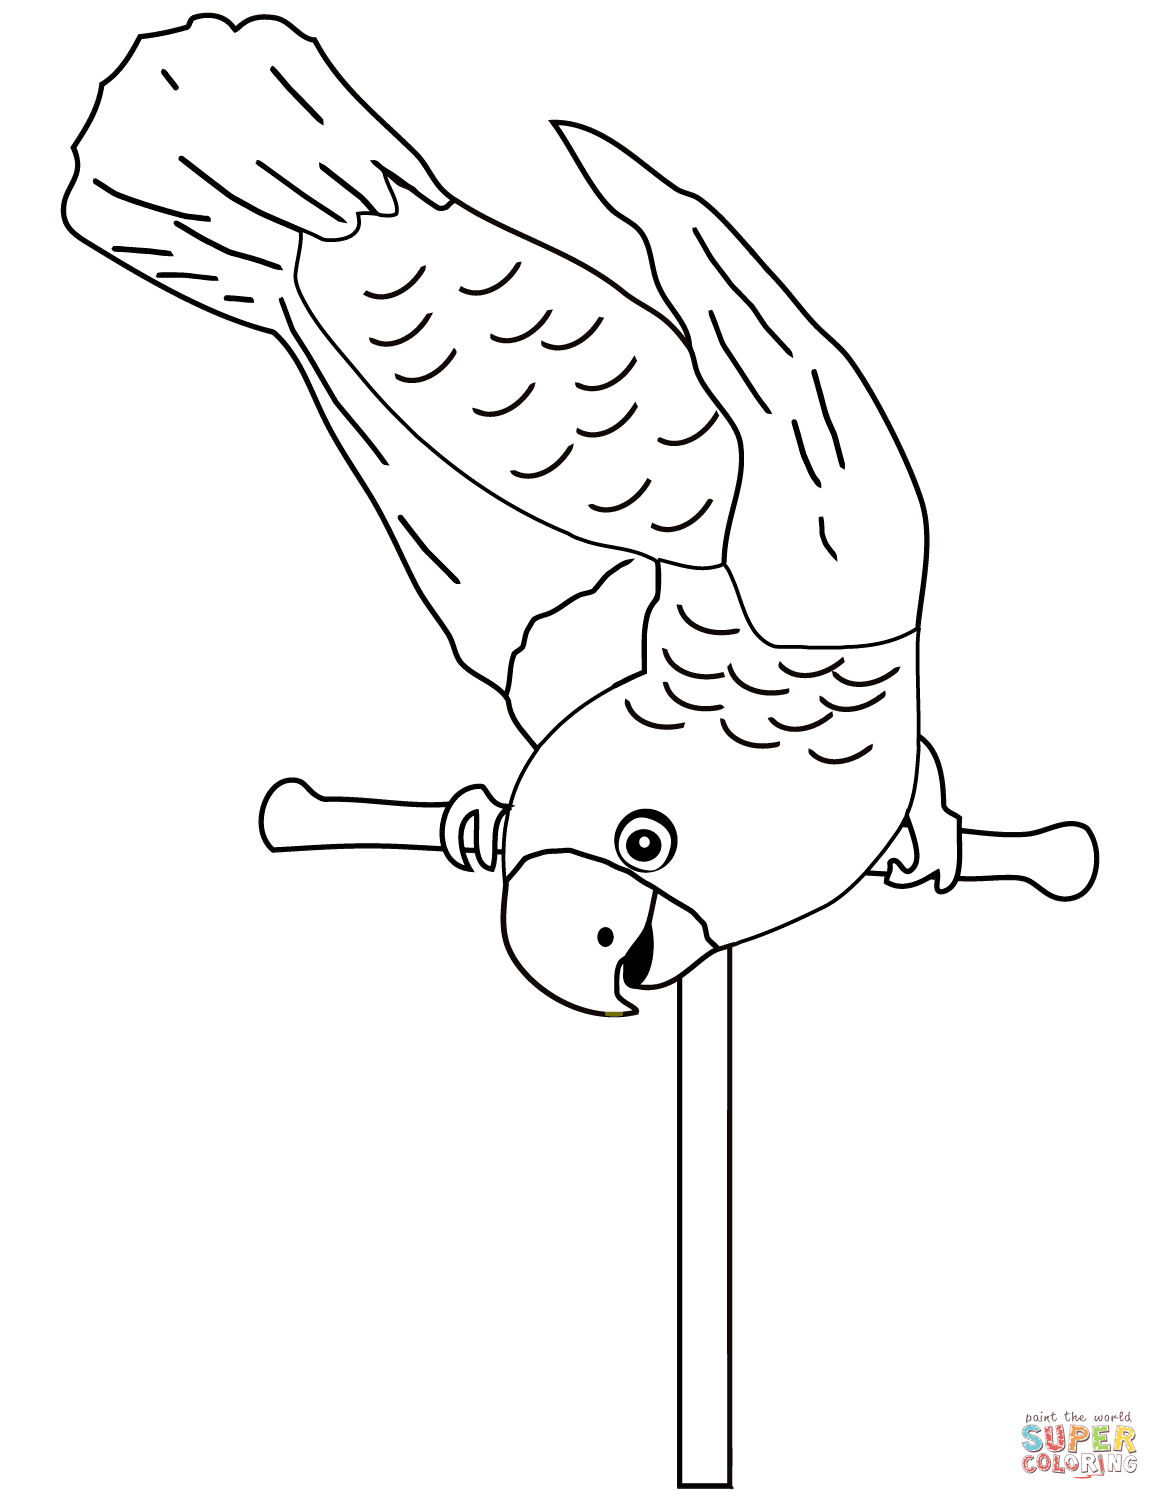 Parrot On Perch Coloring Page